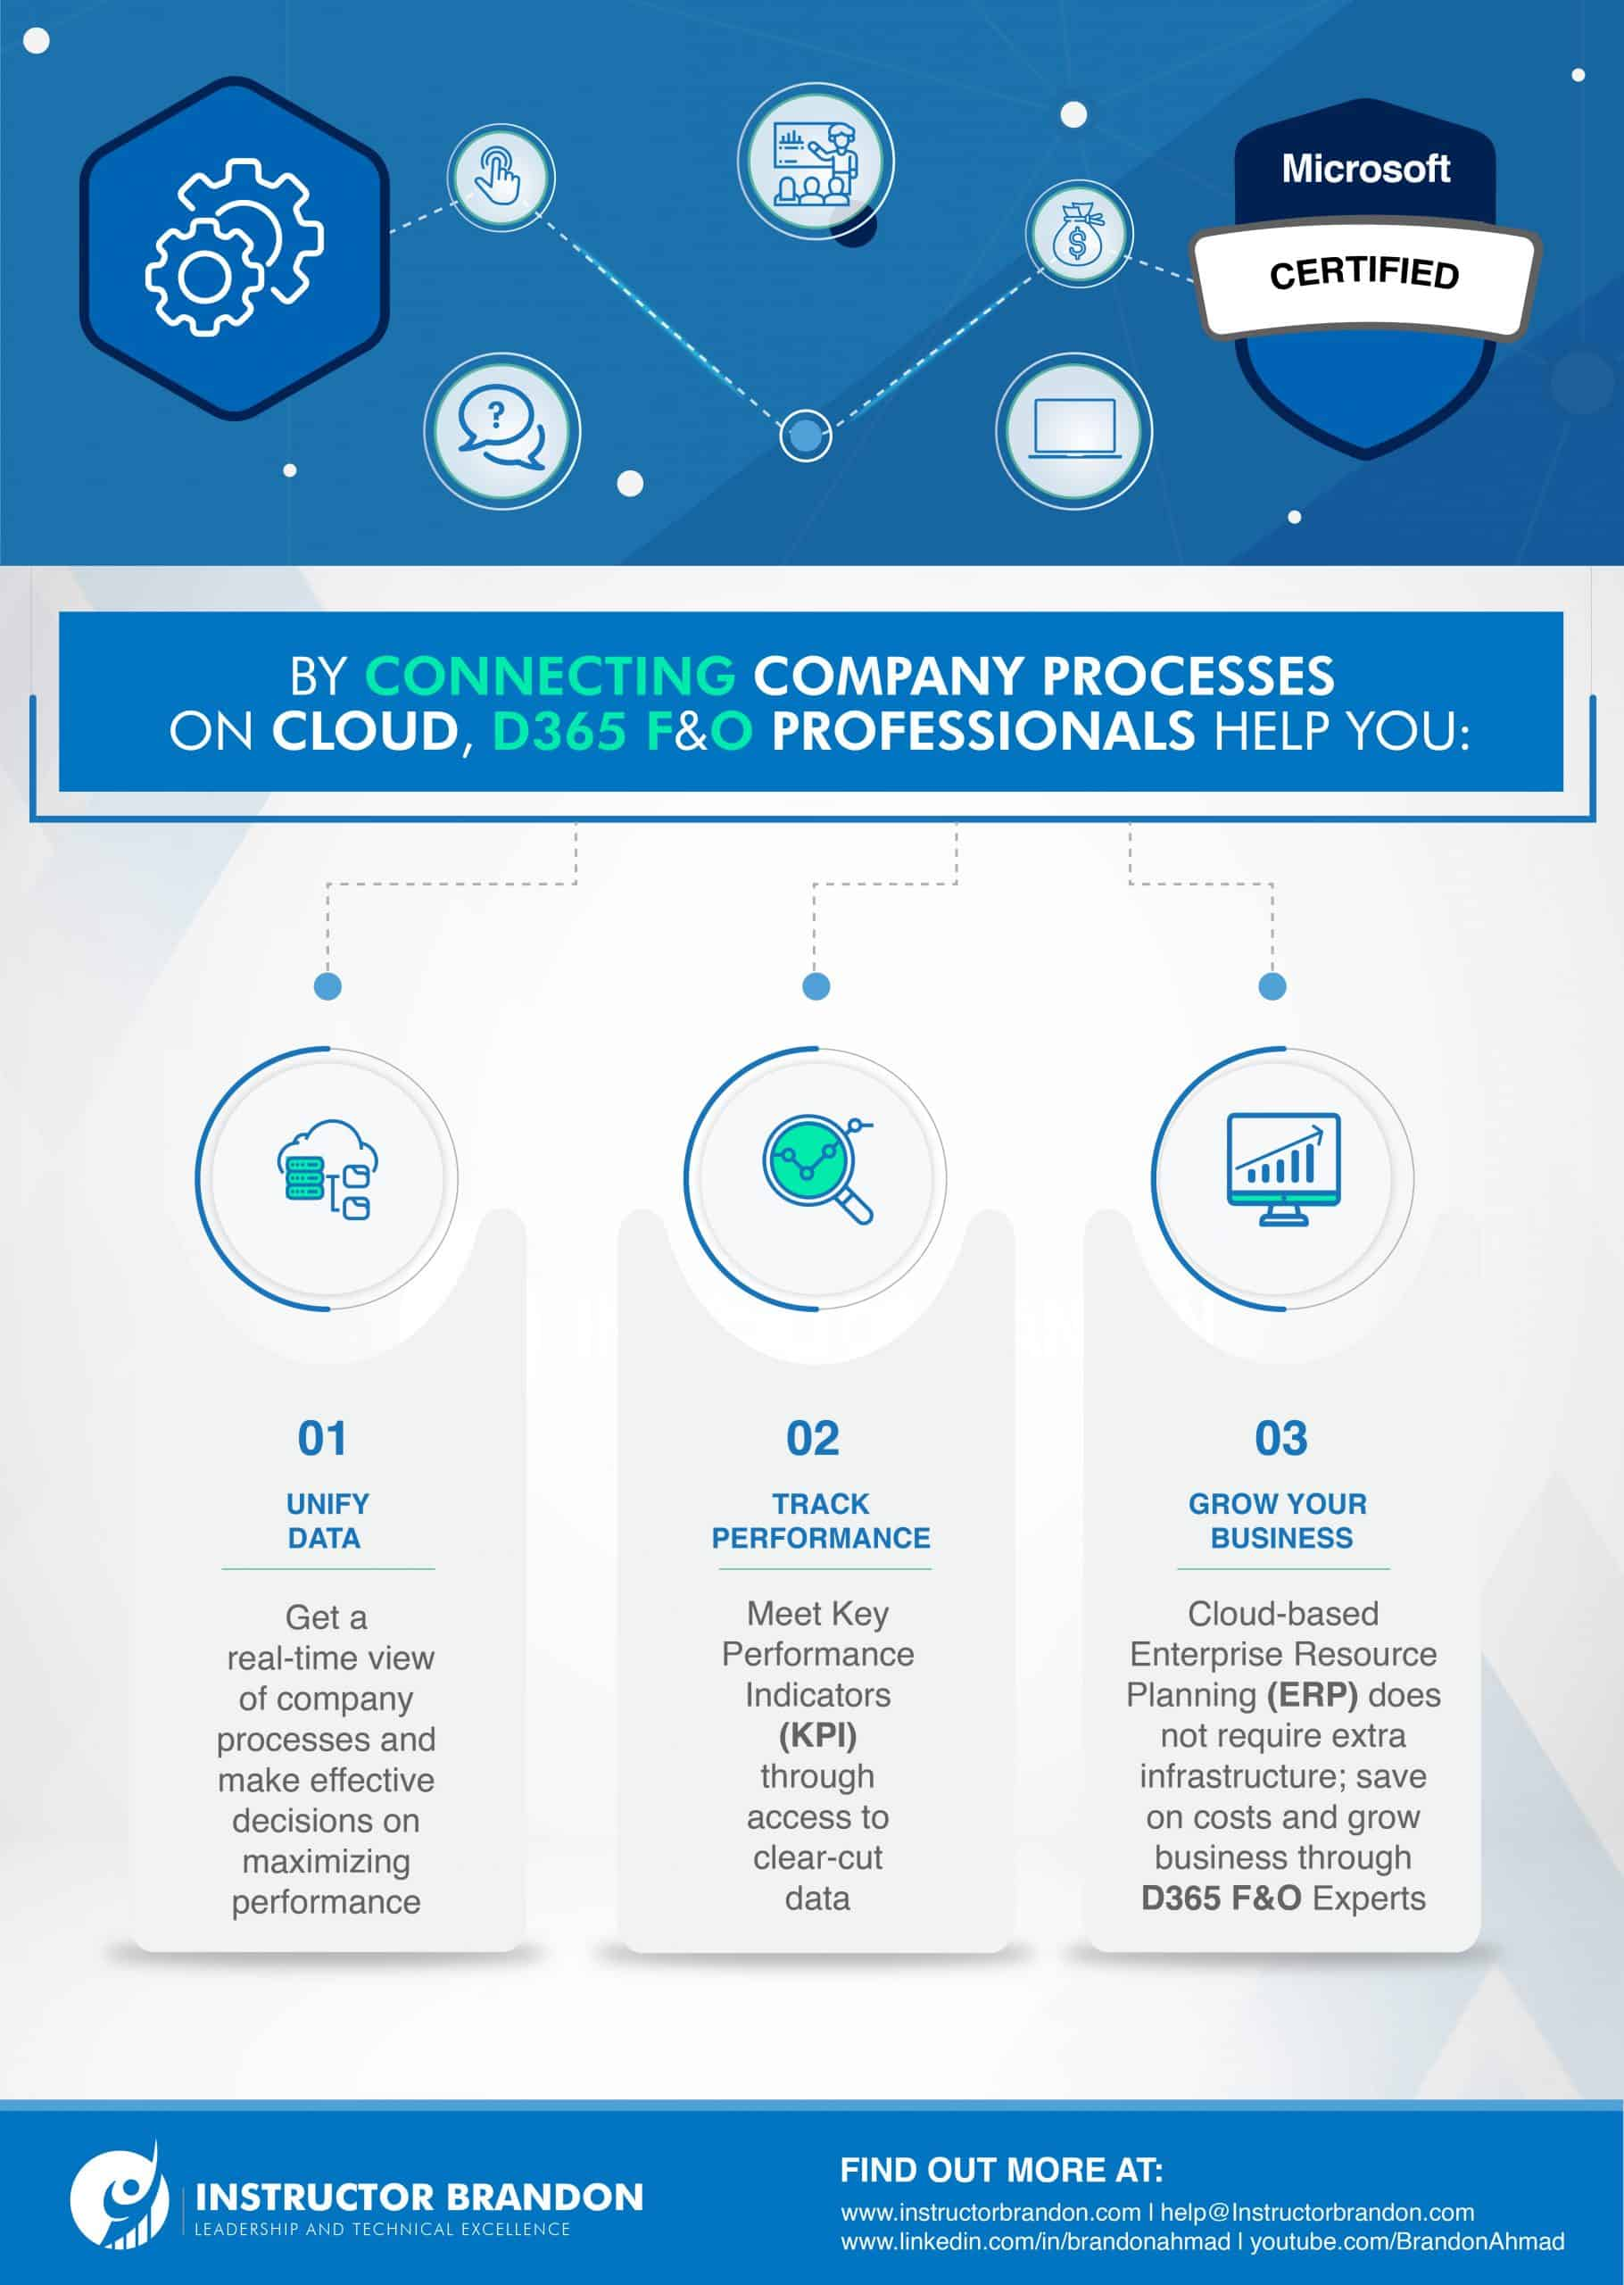 The Image Shows How Companies Benefit from Connecting Their Processes in the Cloud Using Dynamics 365 Finance and Operations